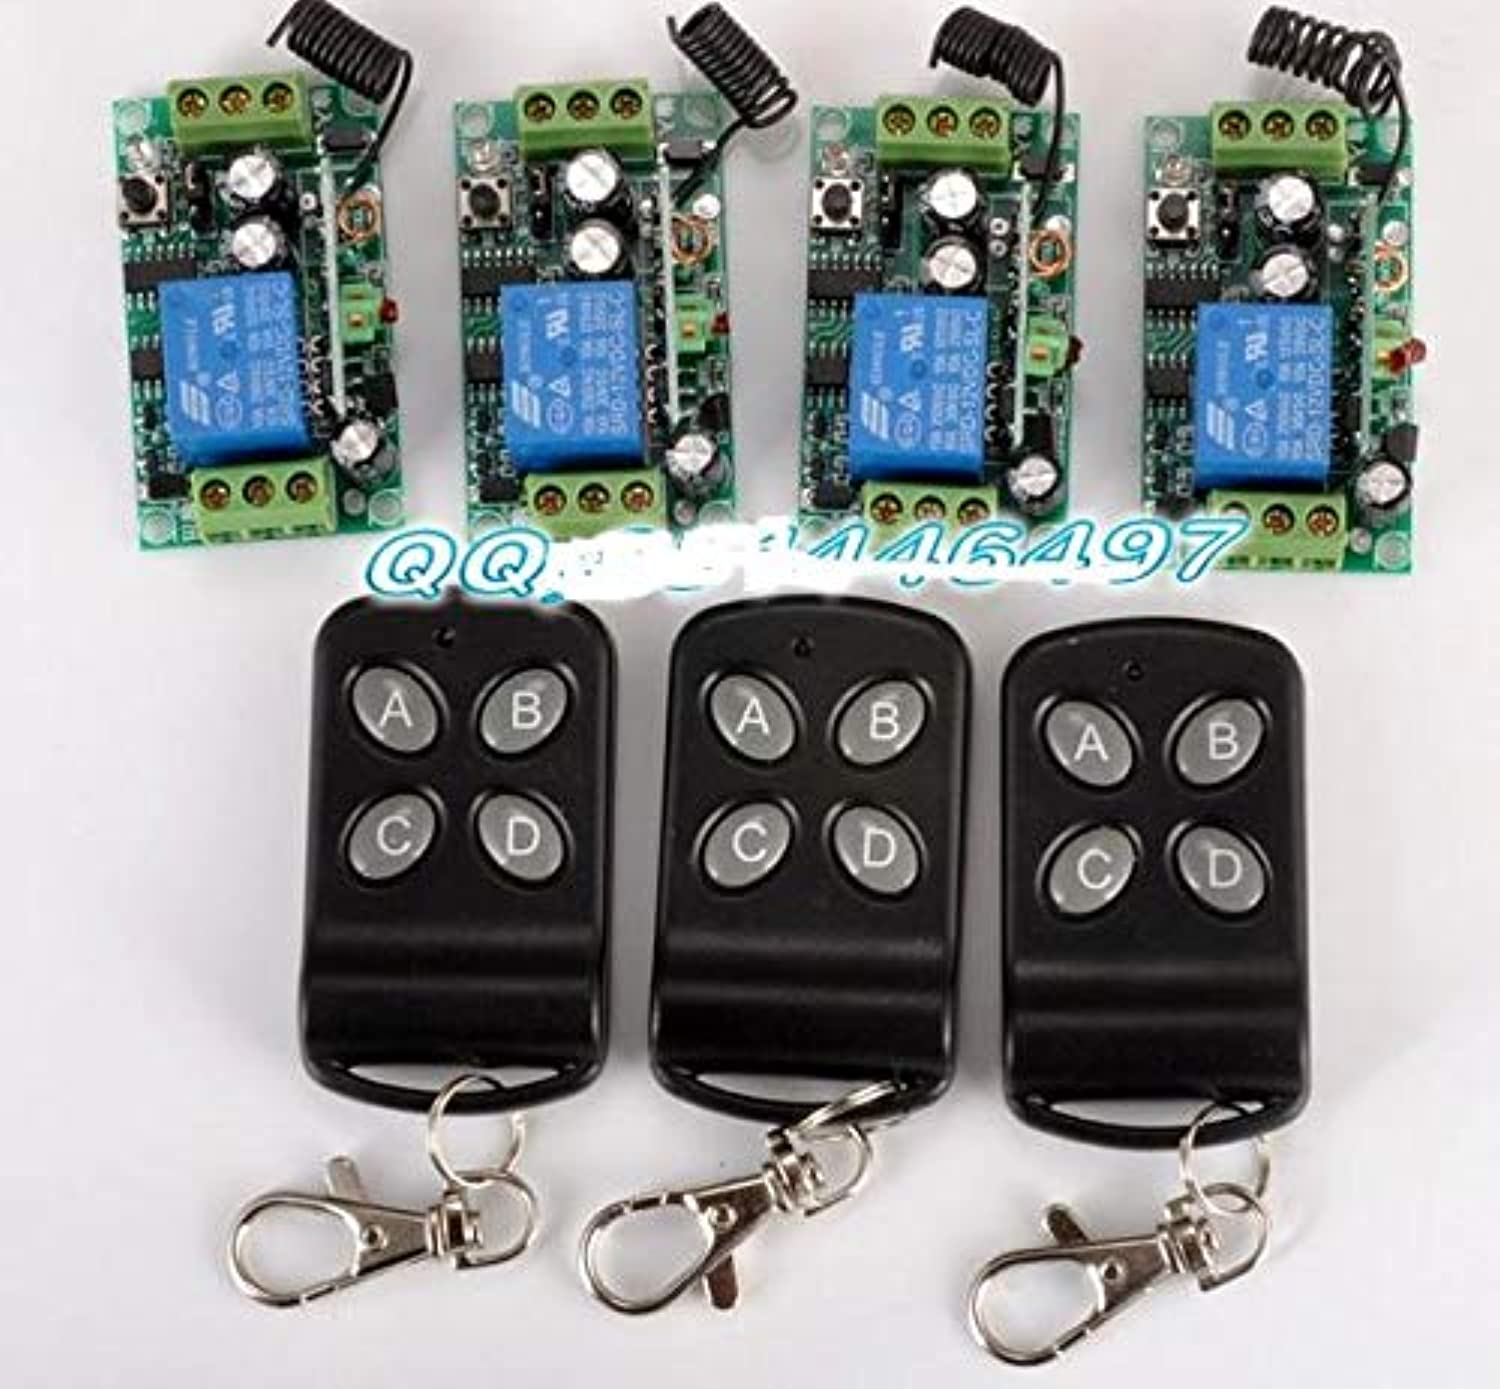 DC 12V 10A 1CH RF Wireless Remote Control Switch System 4 Receiver & 3 Transmitter Learning Code Receiver